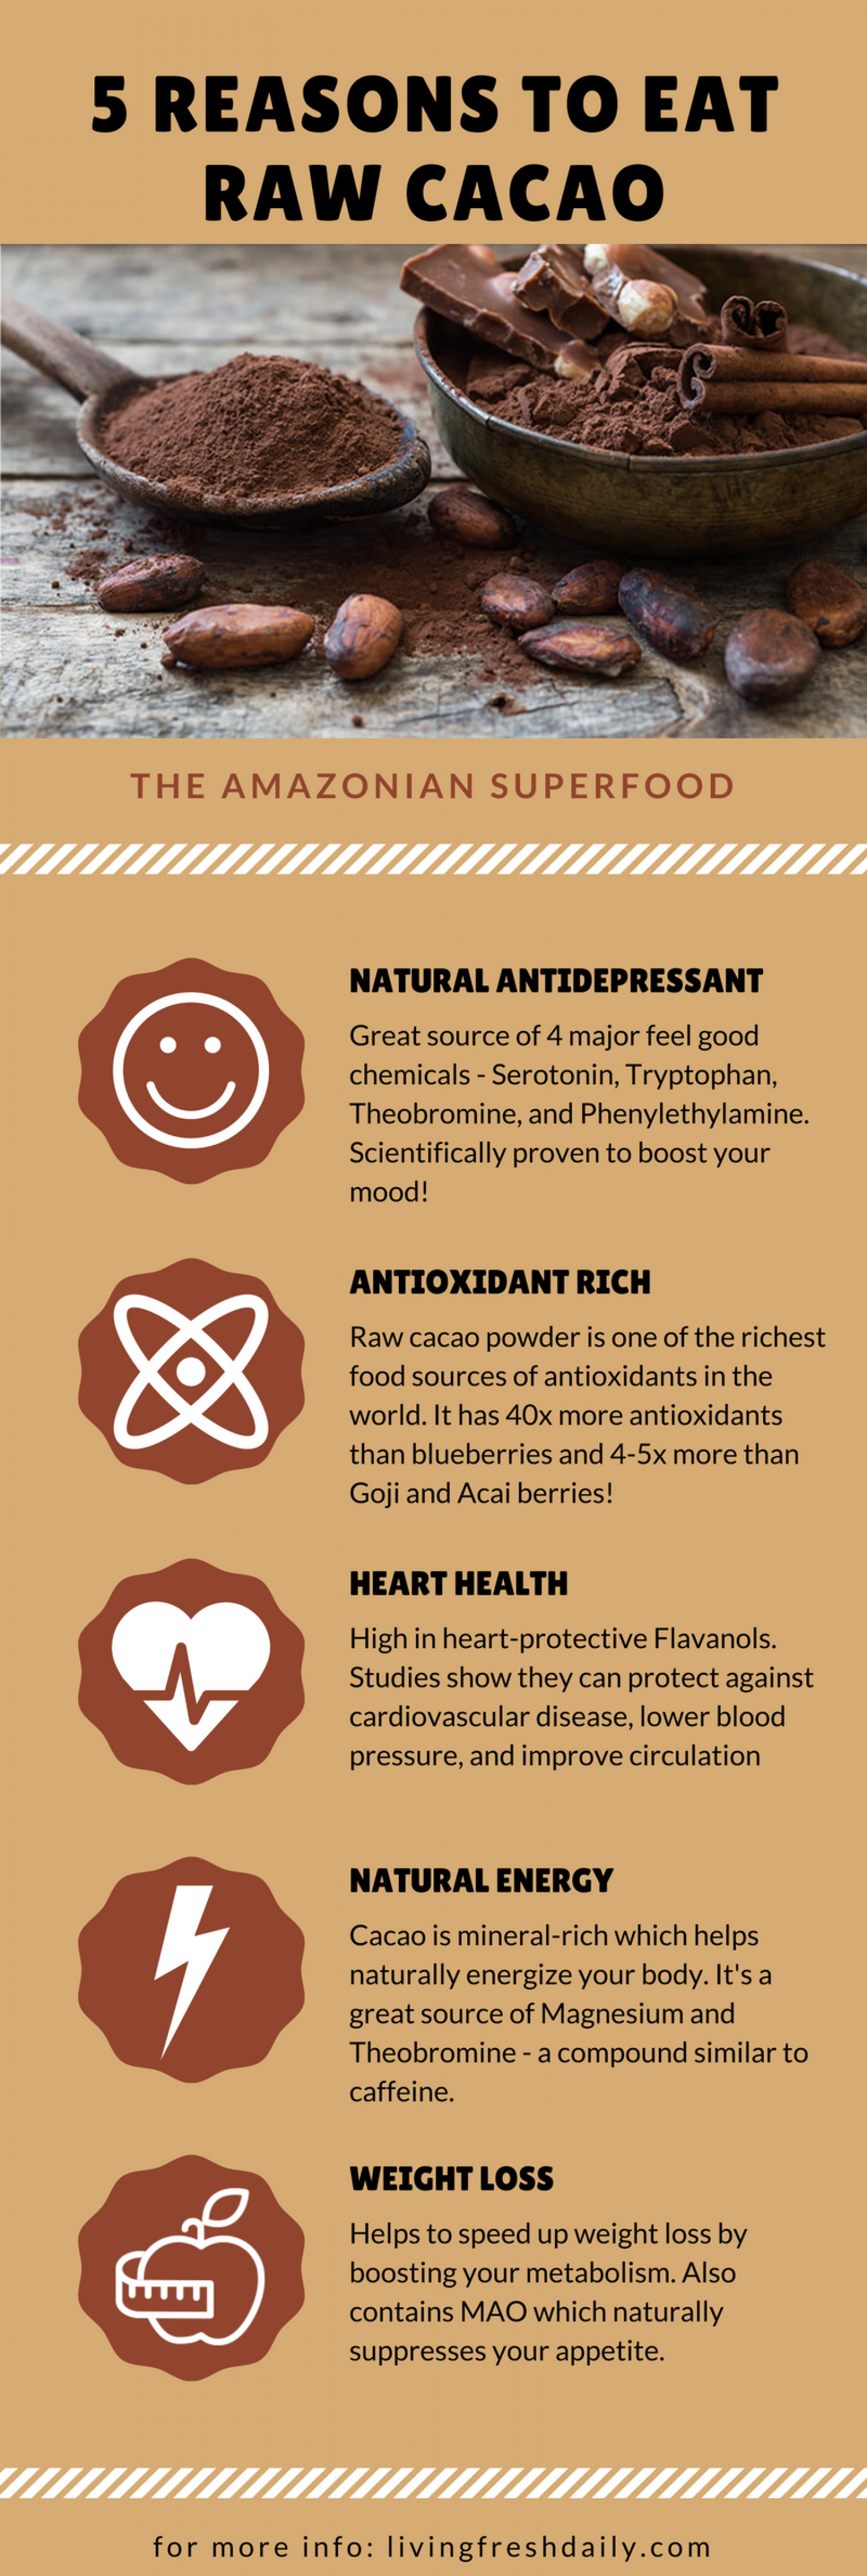 Raw Cacao Health Benefits Infographic